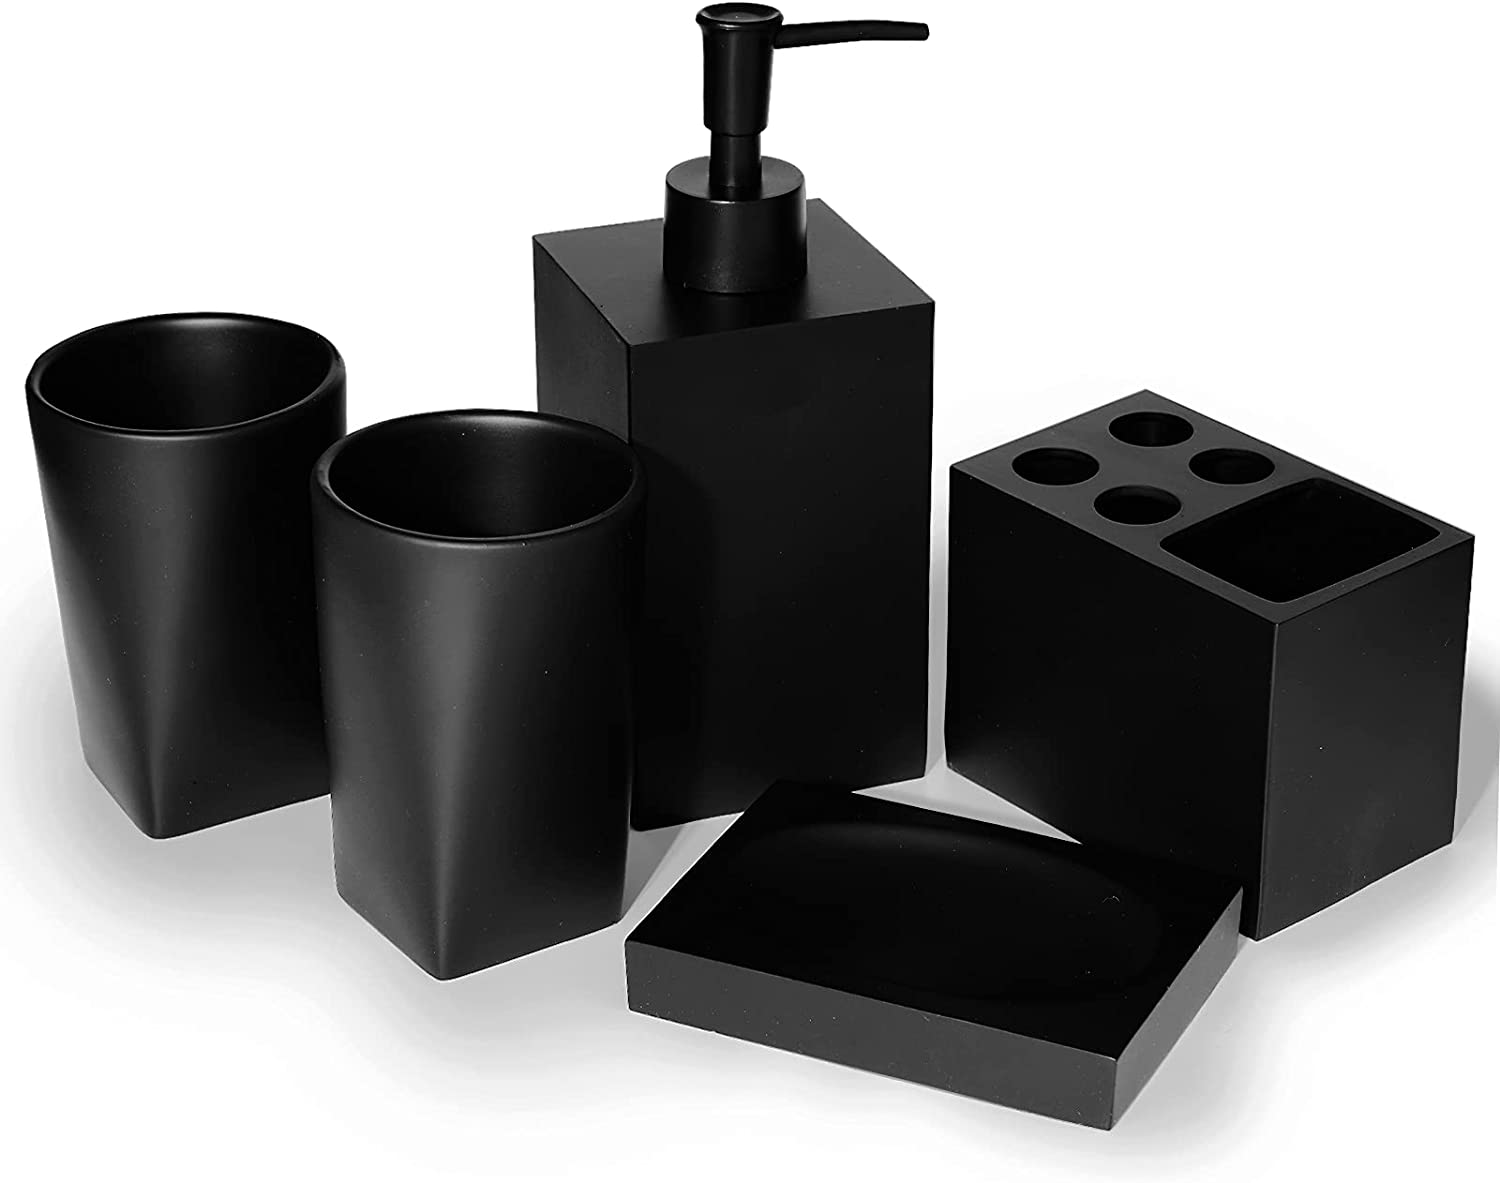 soulamor Bathroom Accessories Set, 5 Pcs Matte Black Bathroom Accessory for Counter Top Restroom Apartment, Complete Accessories Sets with Soap Dispenser, Toothbrush Holder, Tumbler, Soap Dish